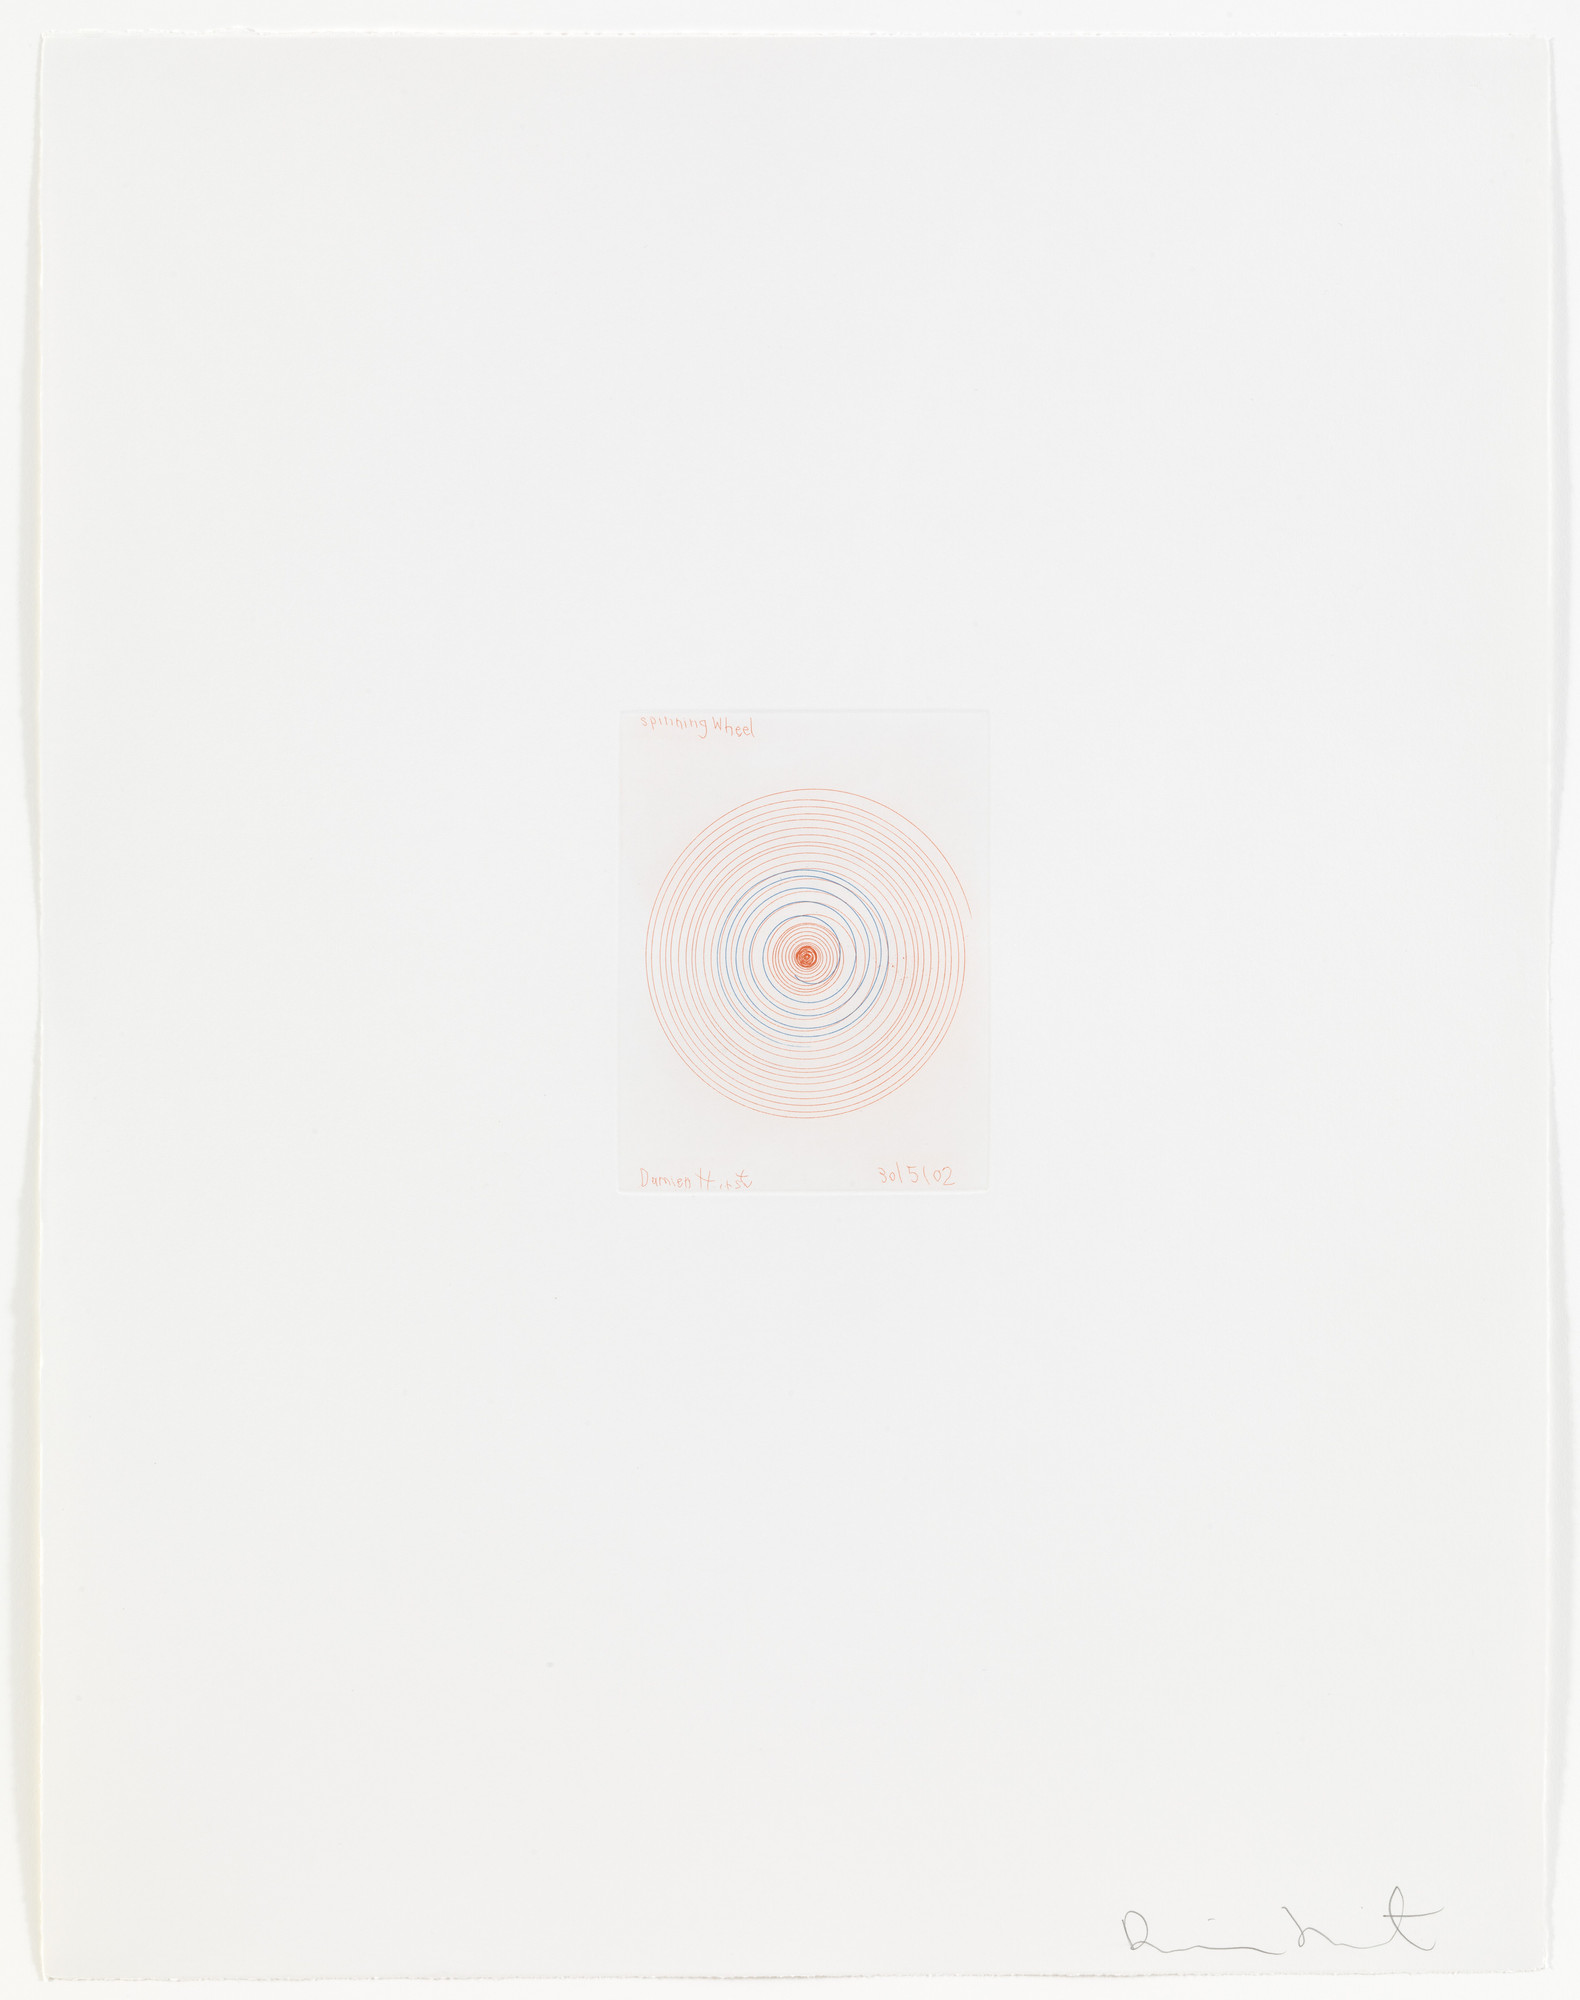 Damien Hirst. Spinning Wheel from In a Spin, the Action of the World on Things, Volume 1. 2002